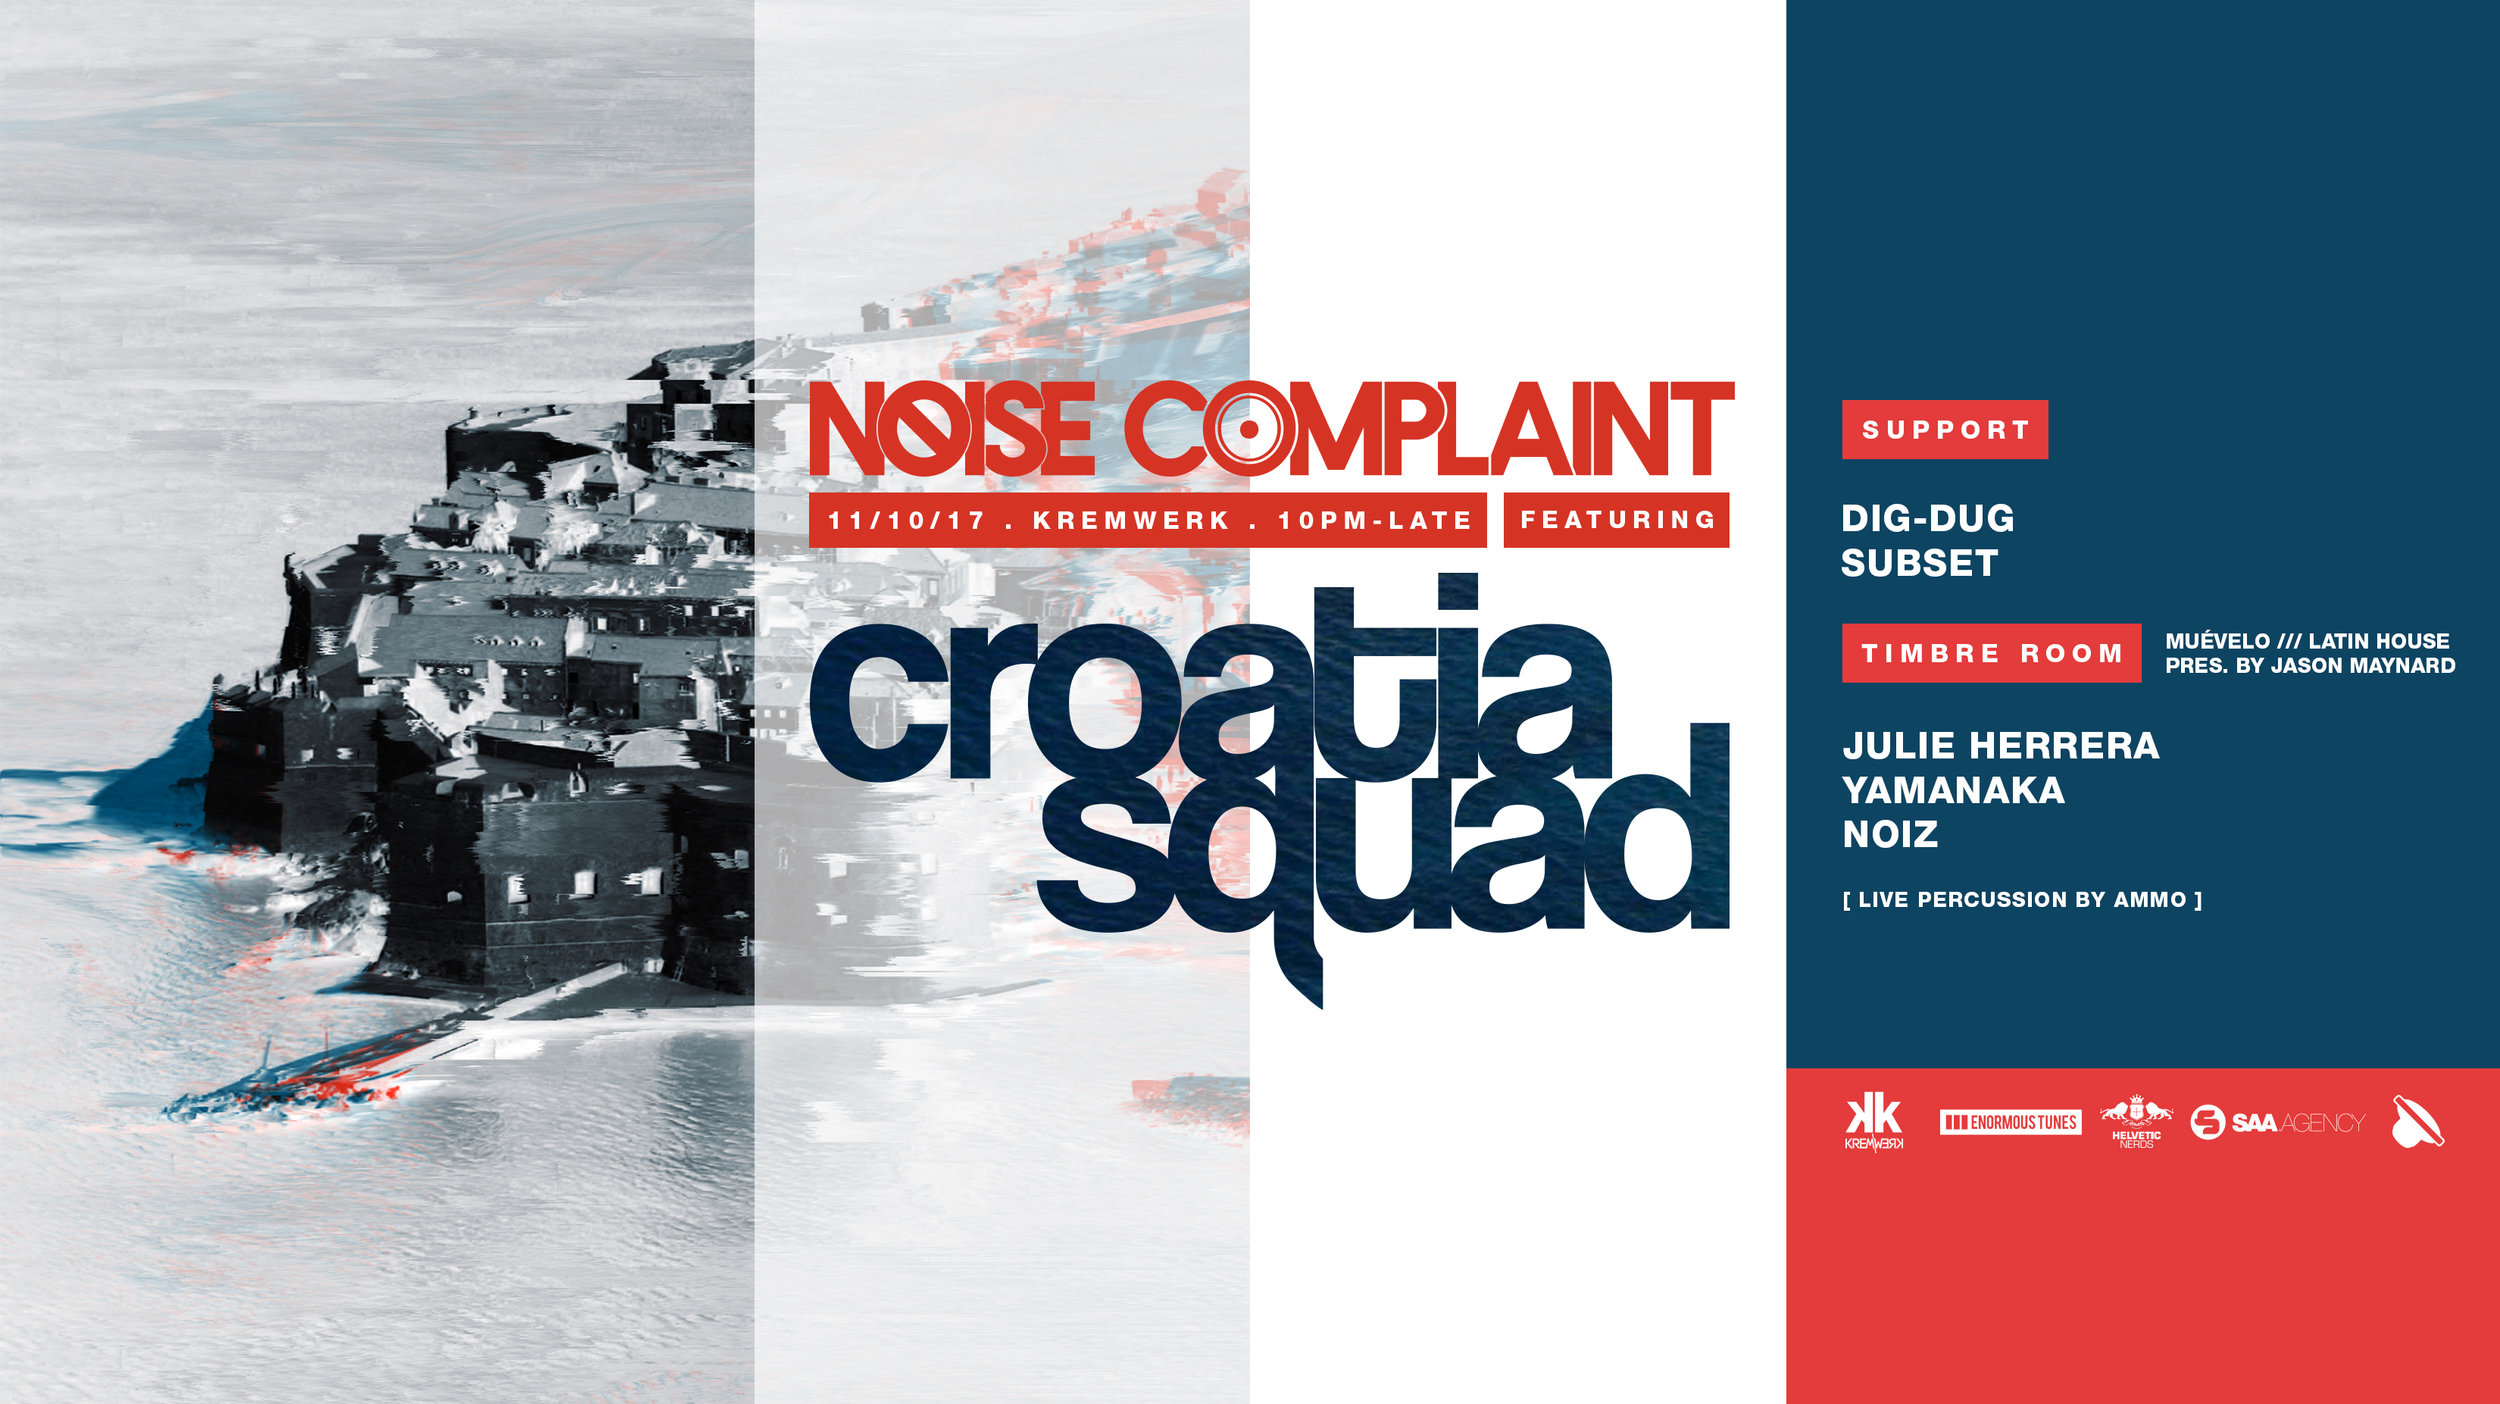 FB COVER 2_111017_CROATIA.jpg